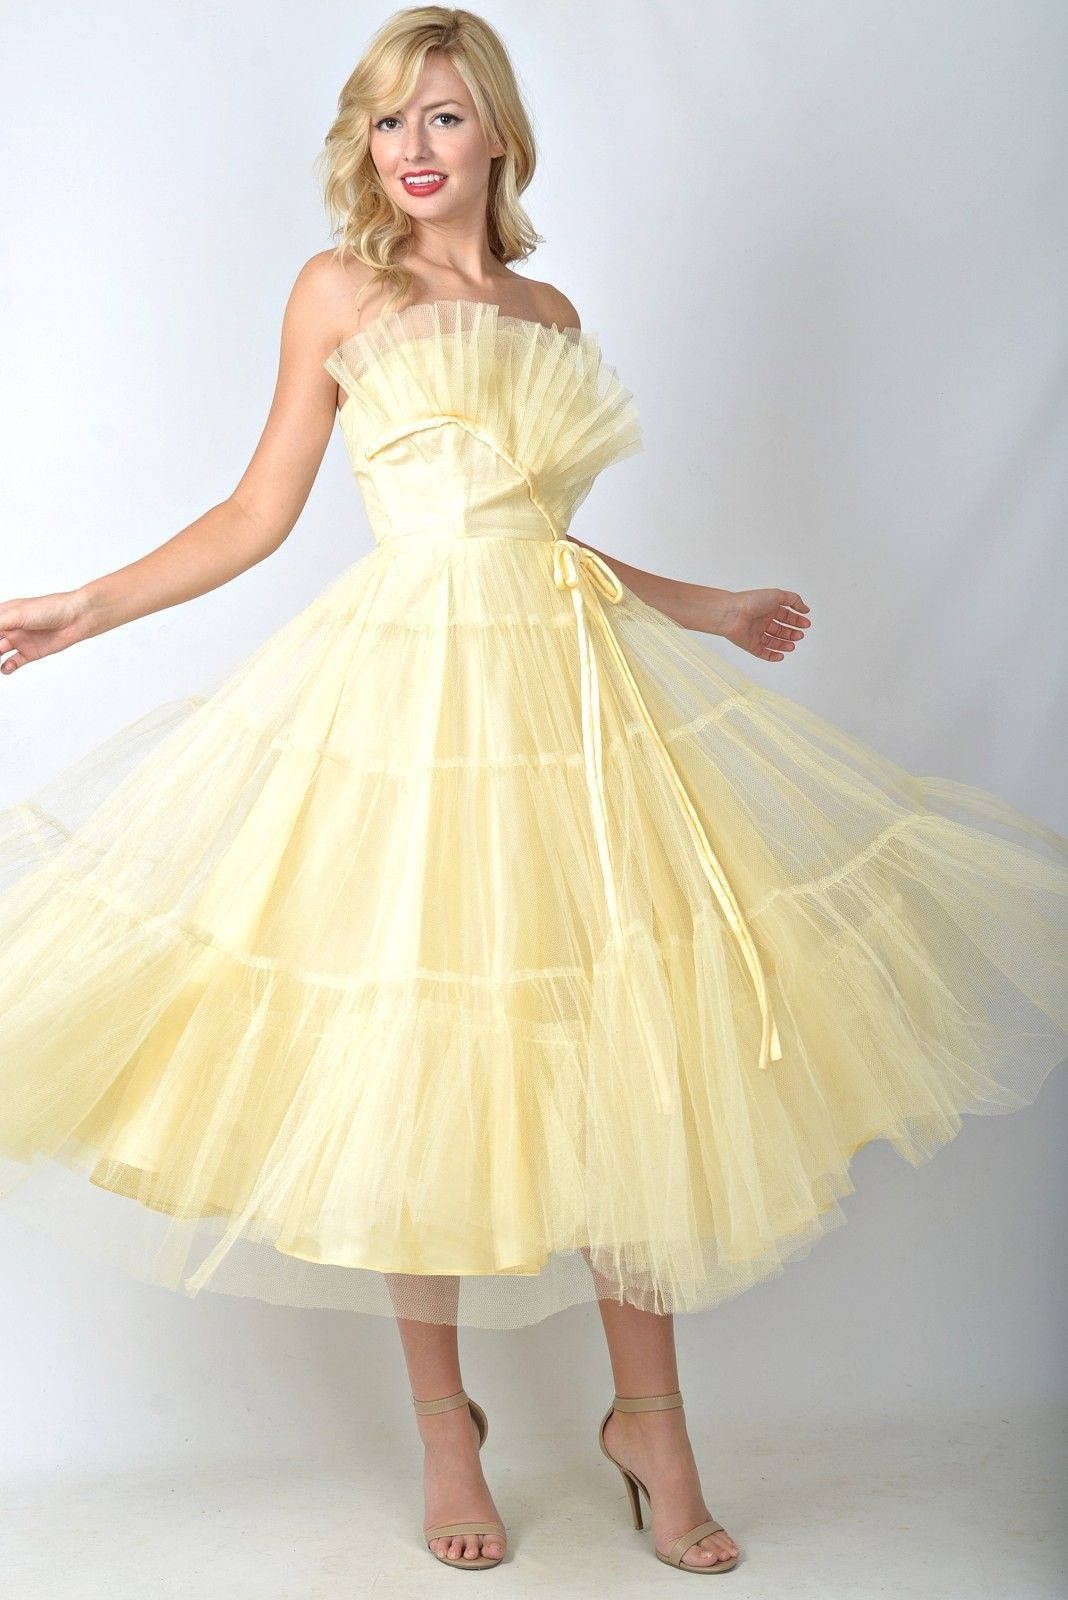 Us party dress found on ebay virtual vintage pinterest s